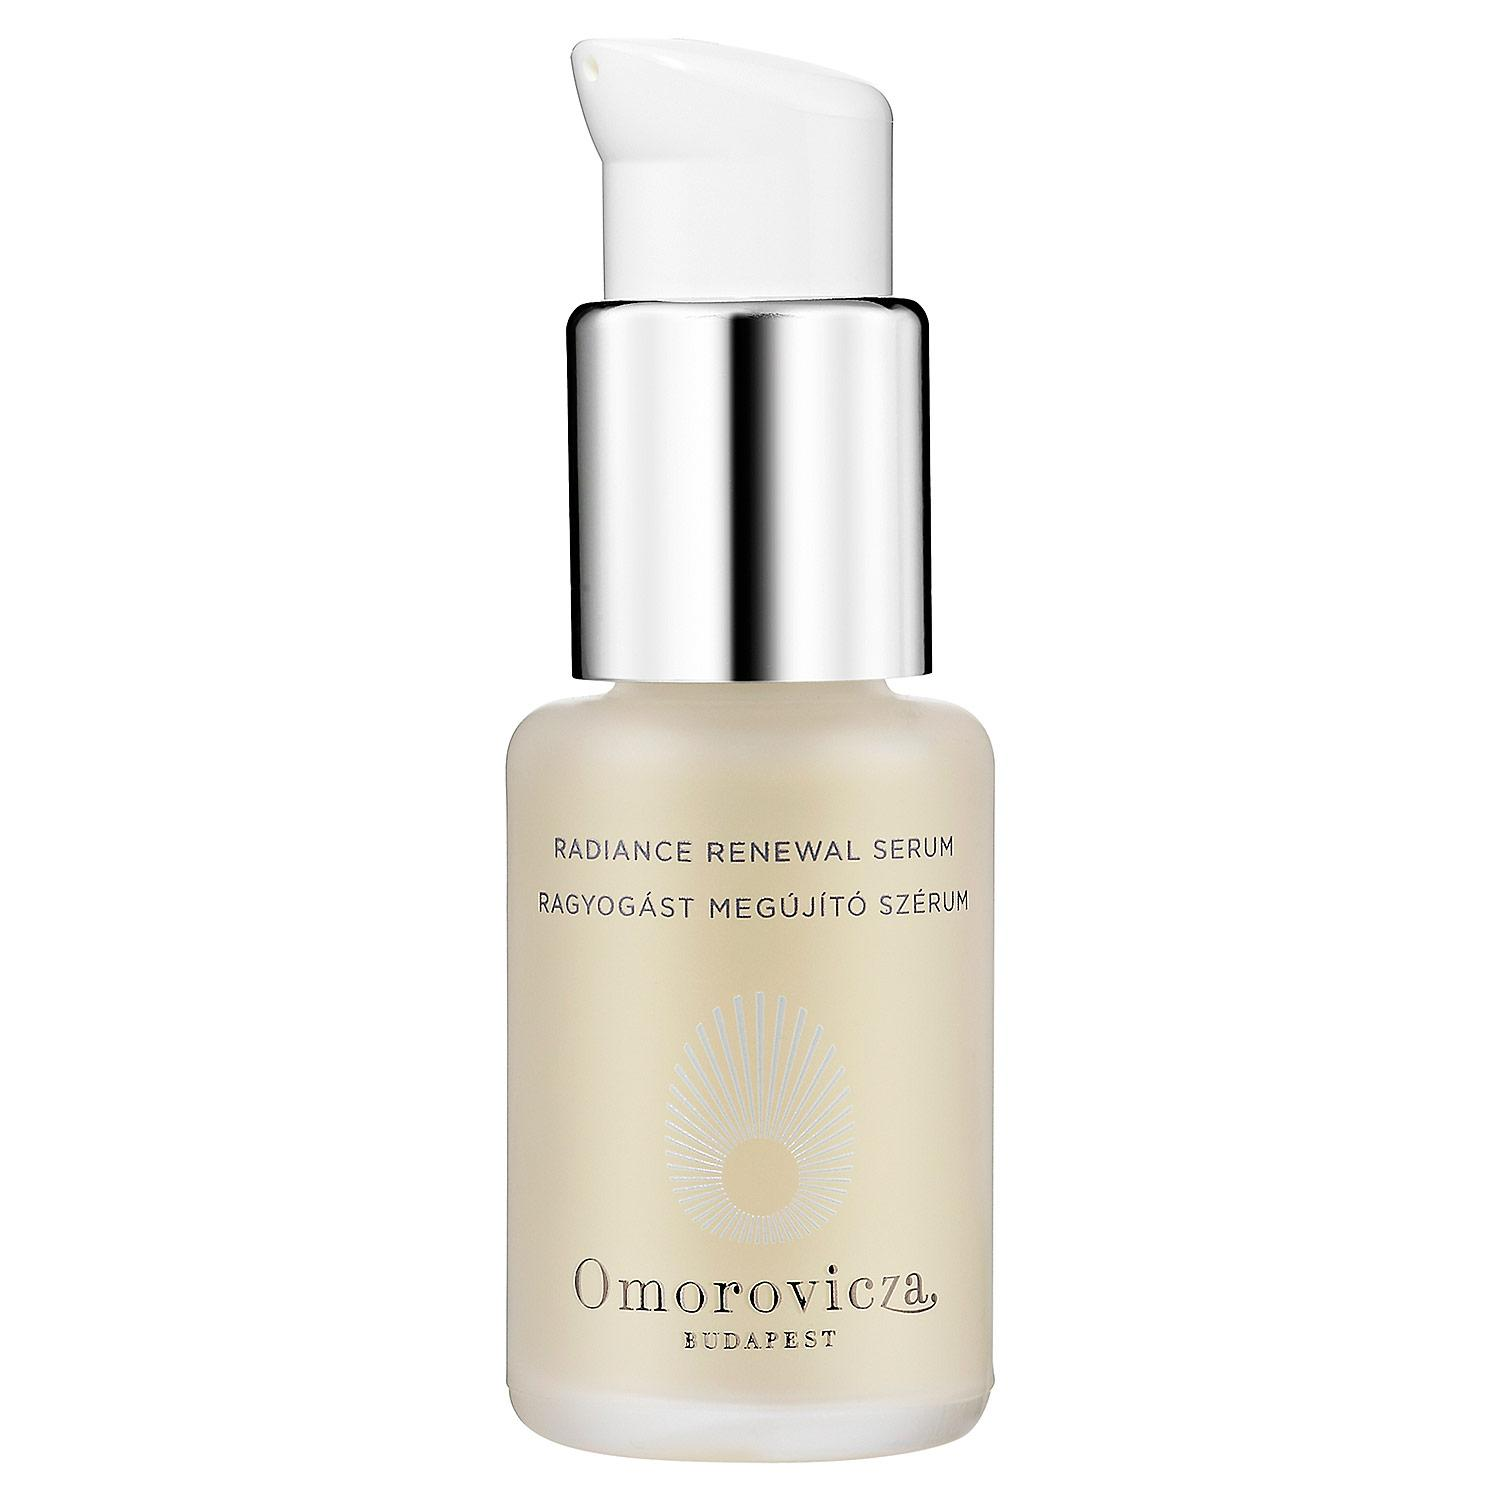 Radiance Renewal Serum